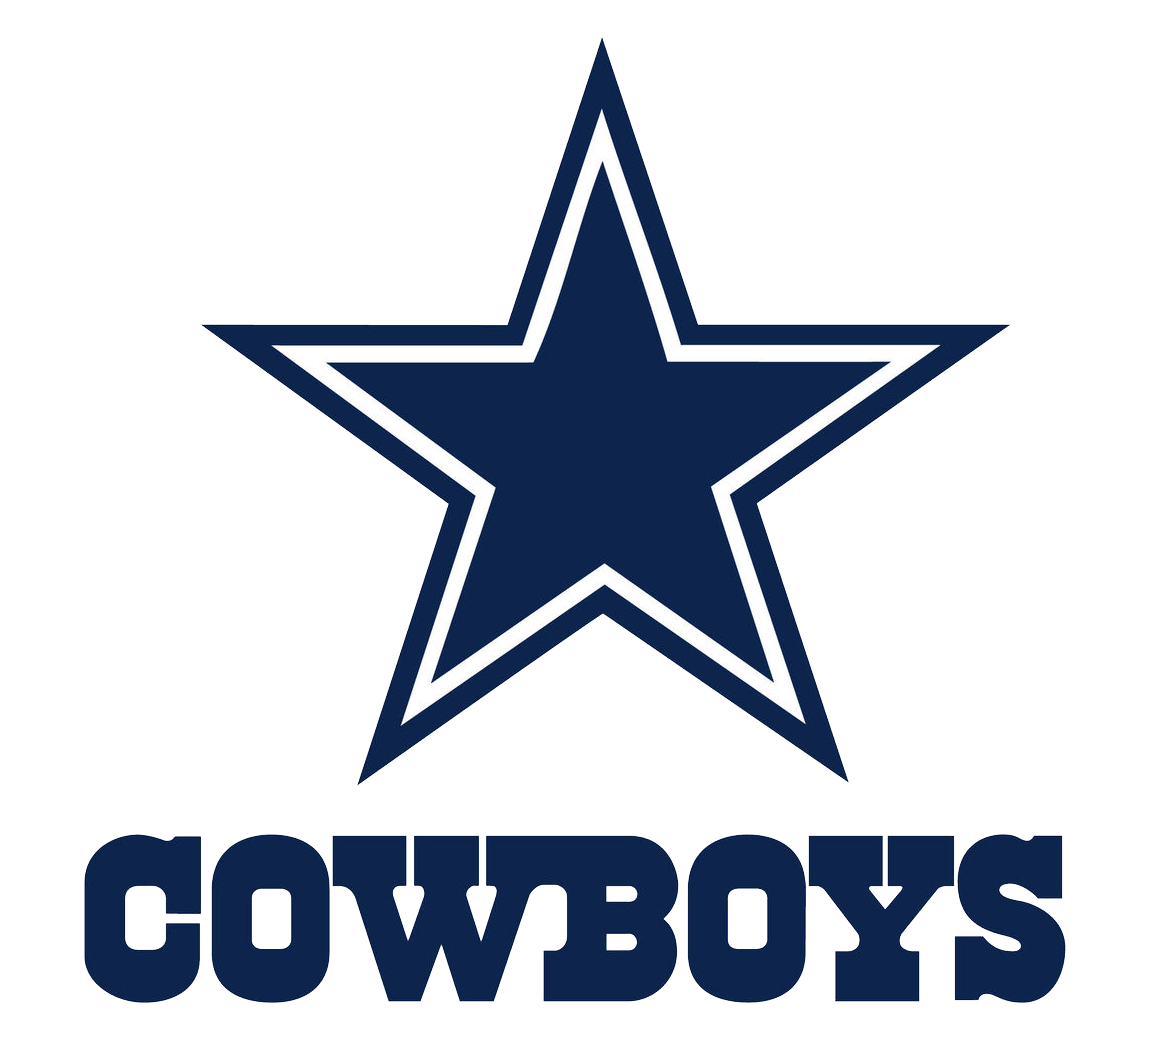 Dallas Cowboys Logo - Dallas Cowboys Logo, Dallas Cowboys Symbol Meaning, History and ...